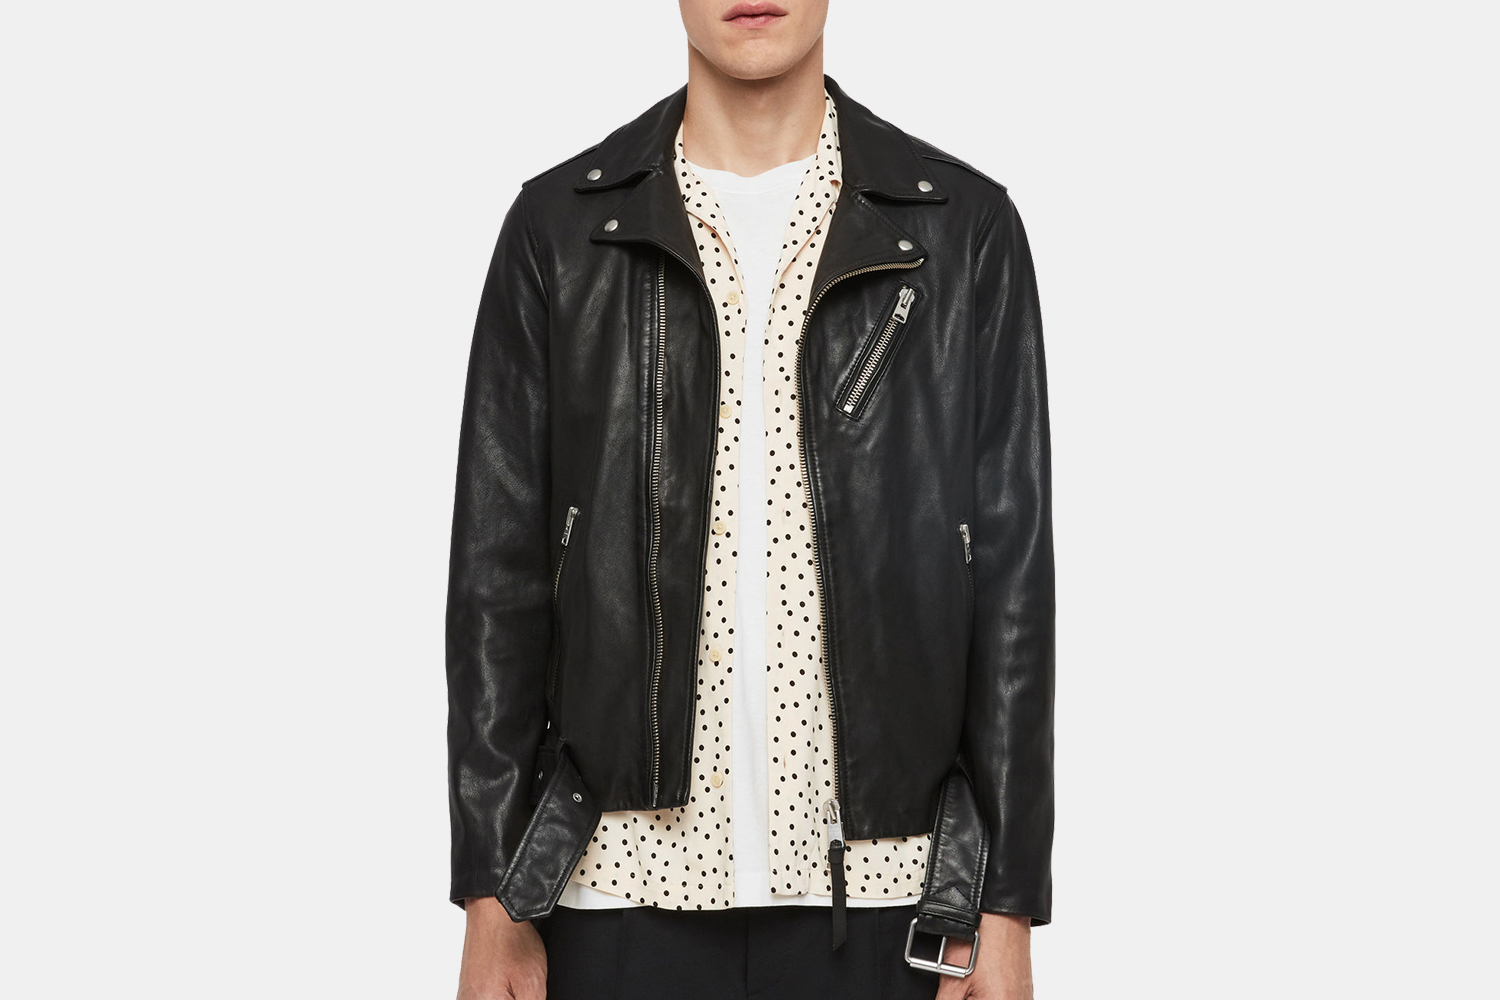 AllSaints Men's Leather Jackets on Sale for Black Friday